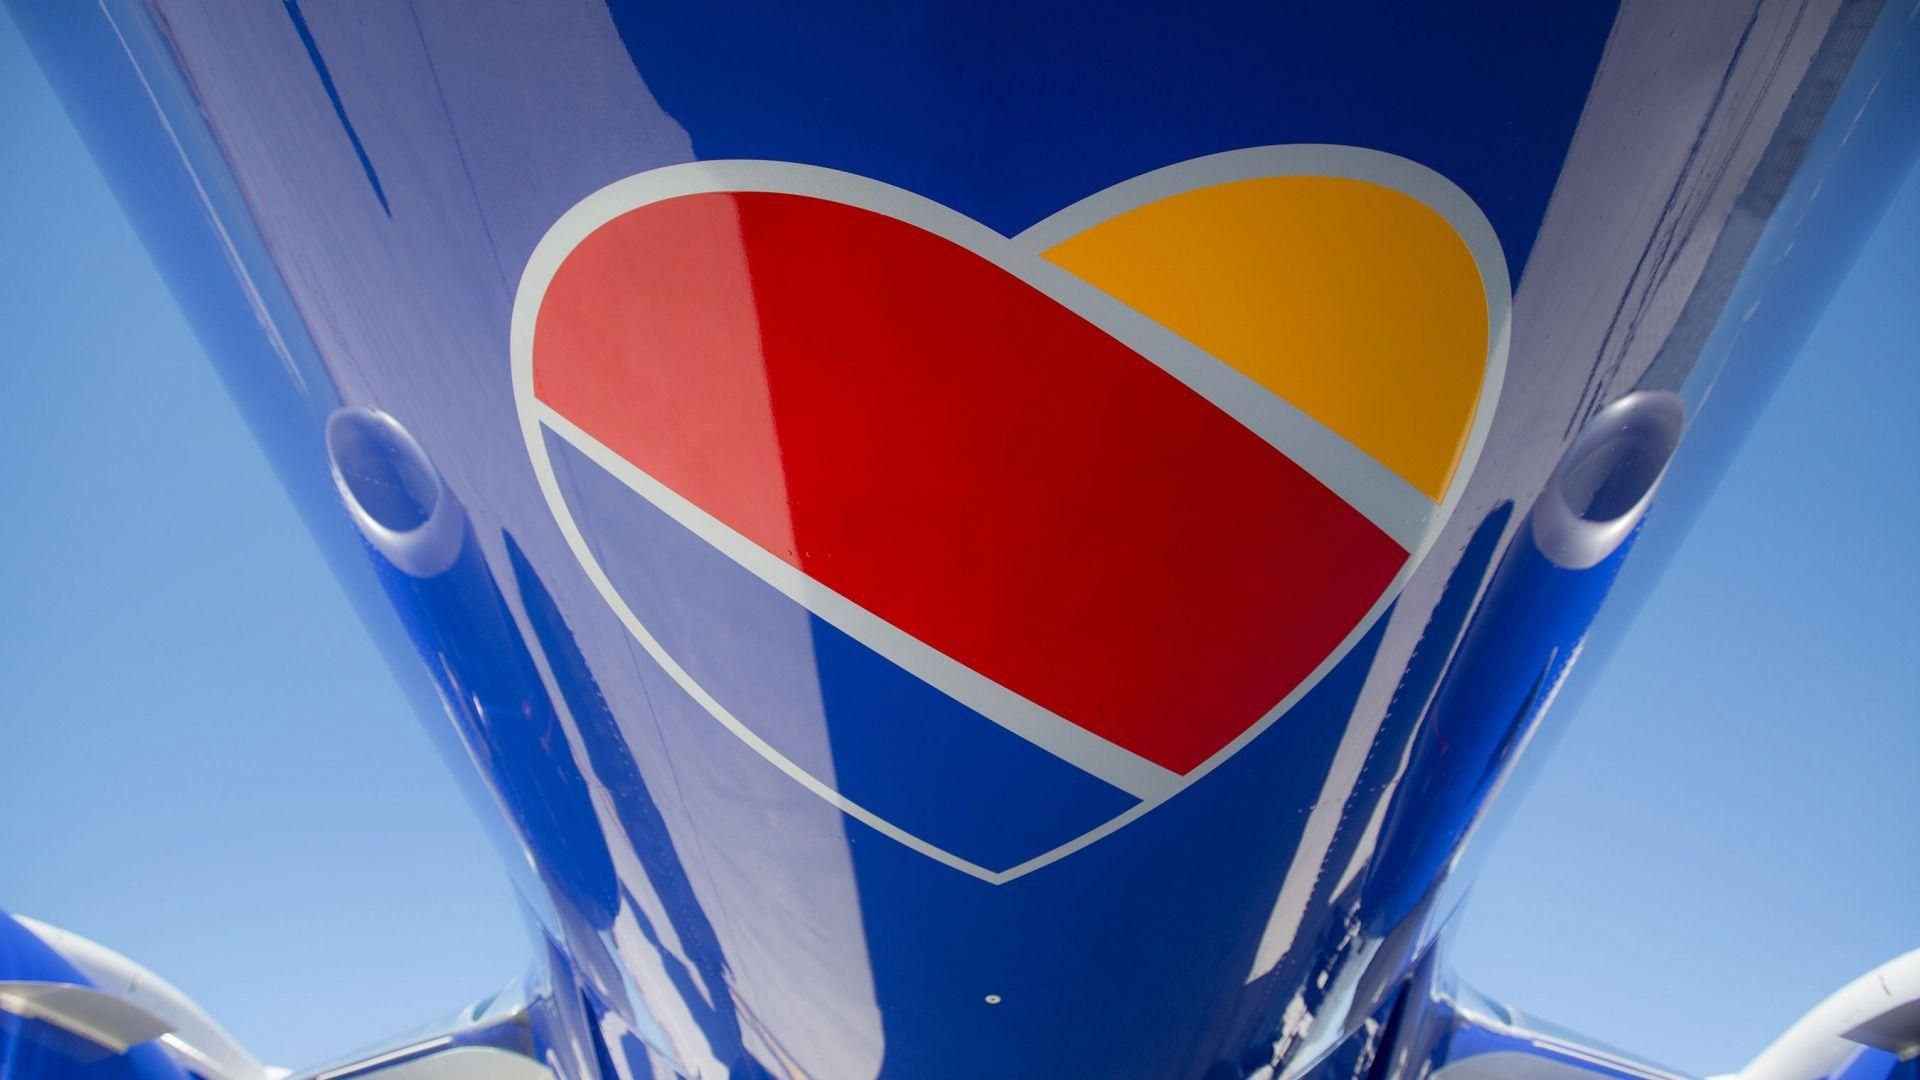 Ppt southwest airlines powerpoint presentation, free download.